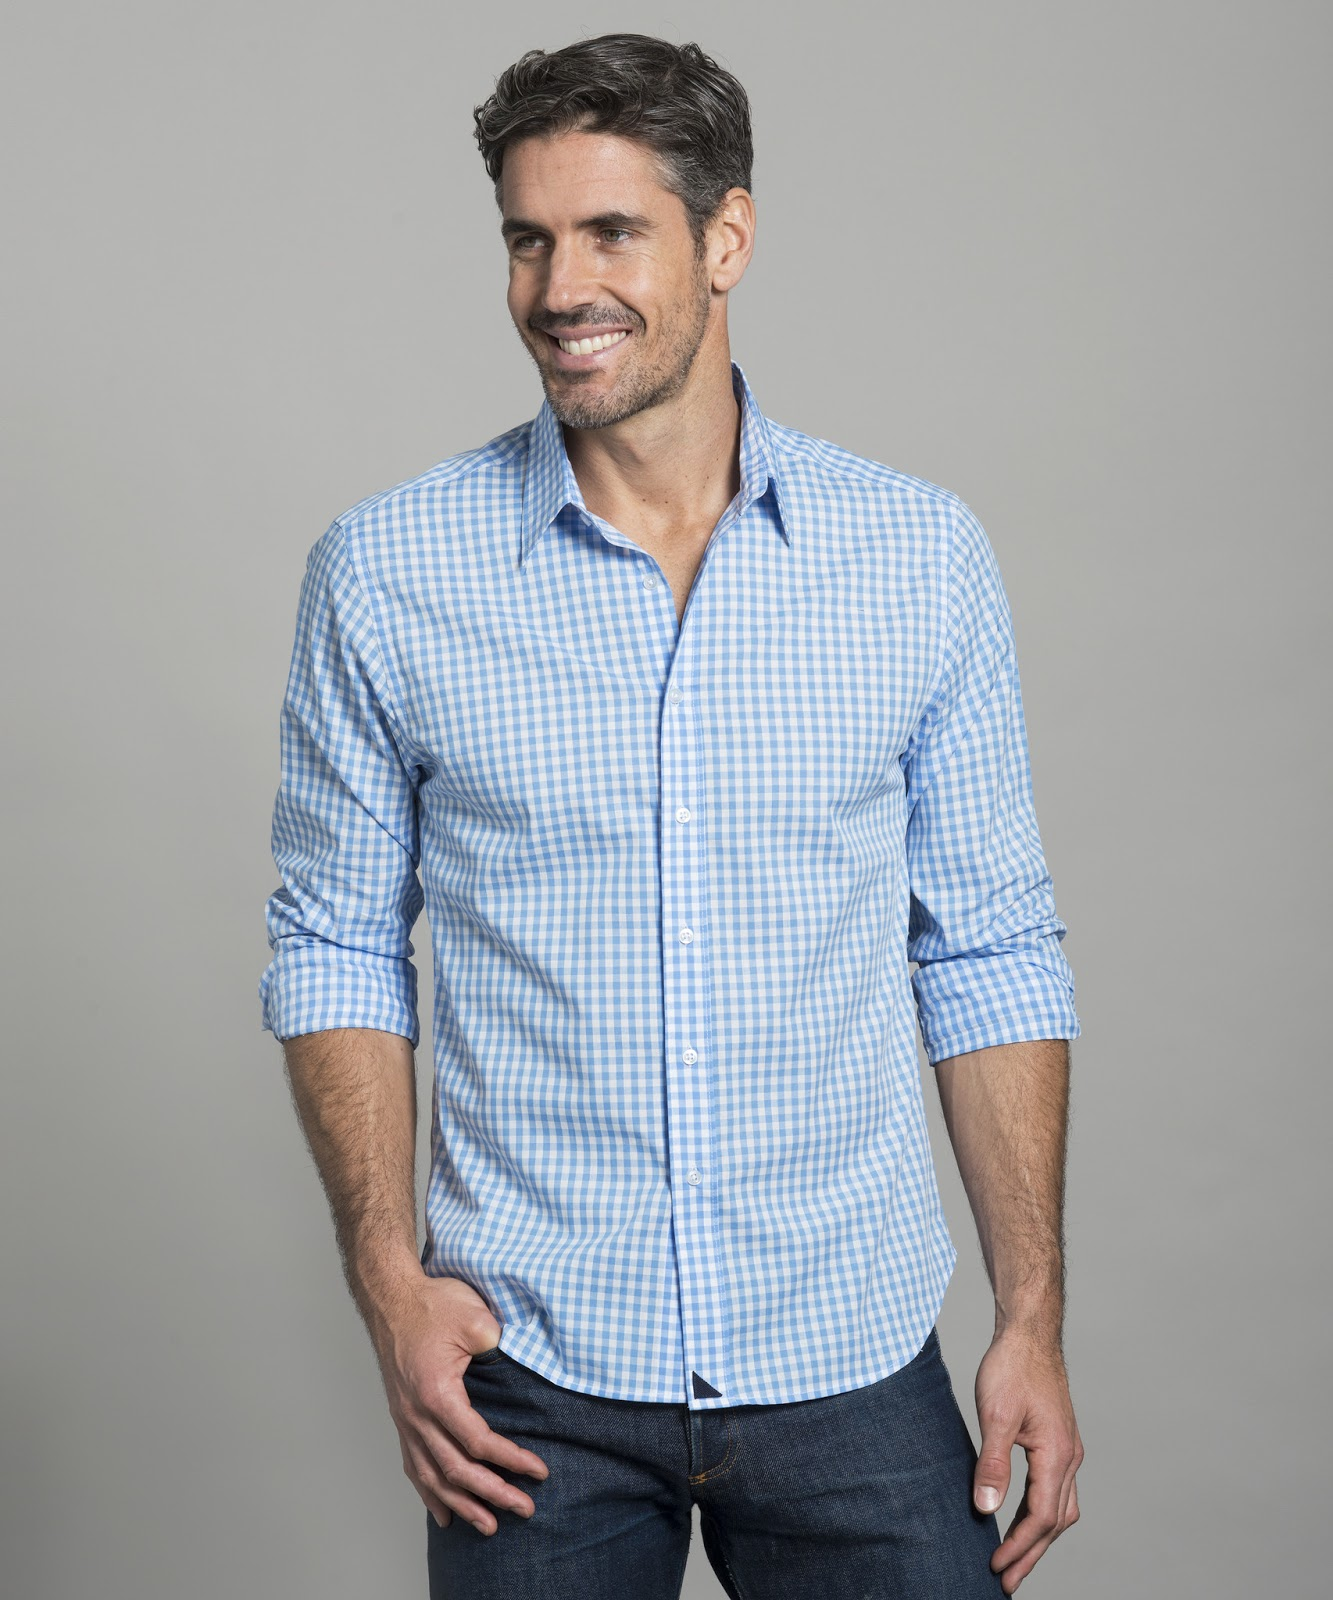 The Shirt You Can Wear Untucked